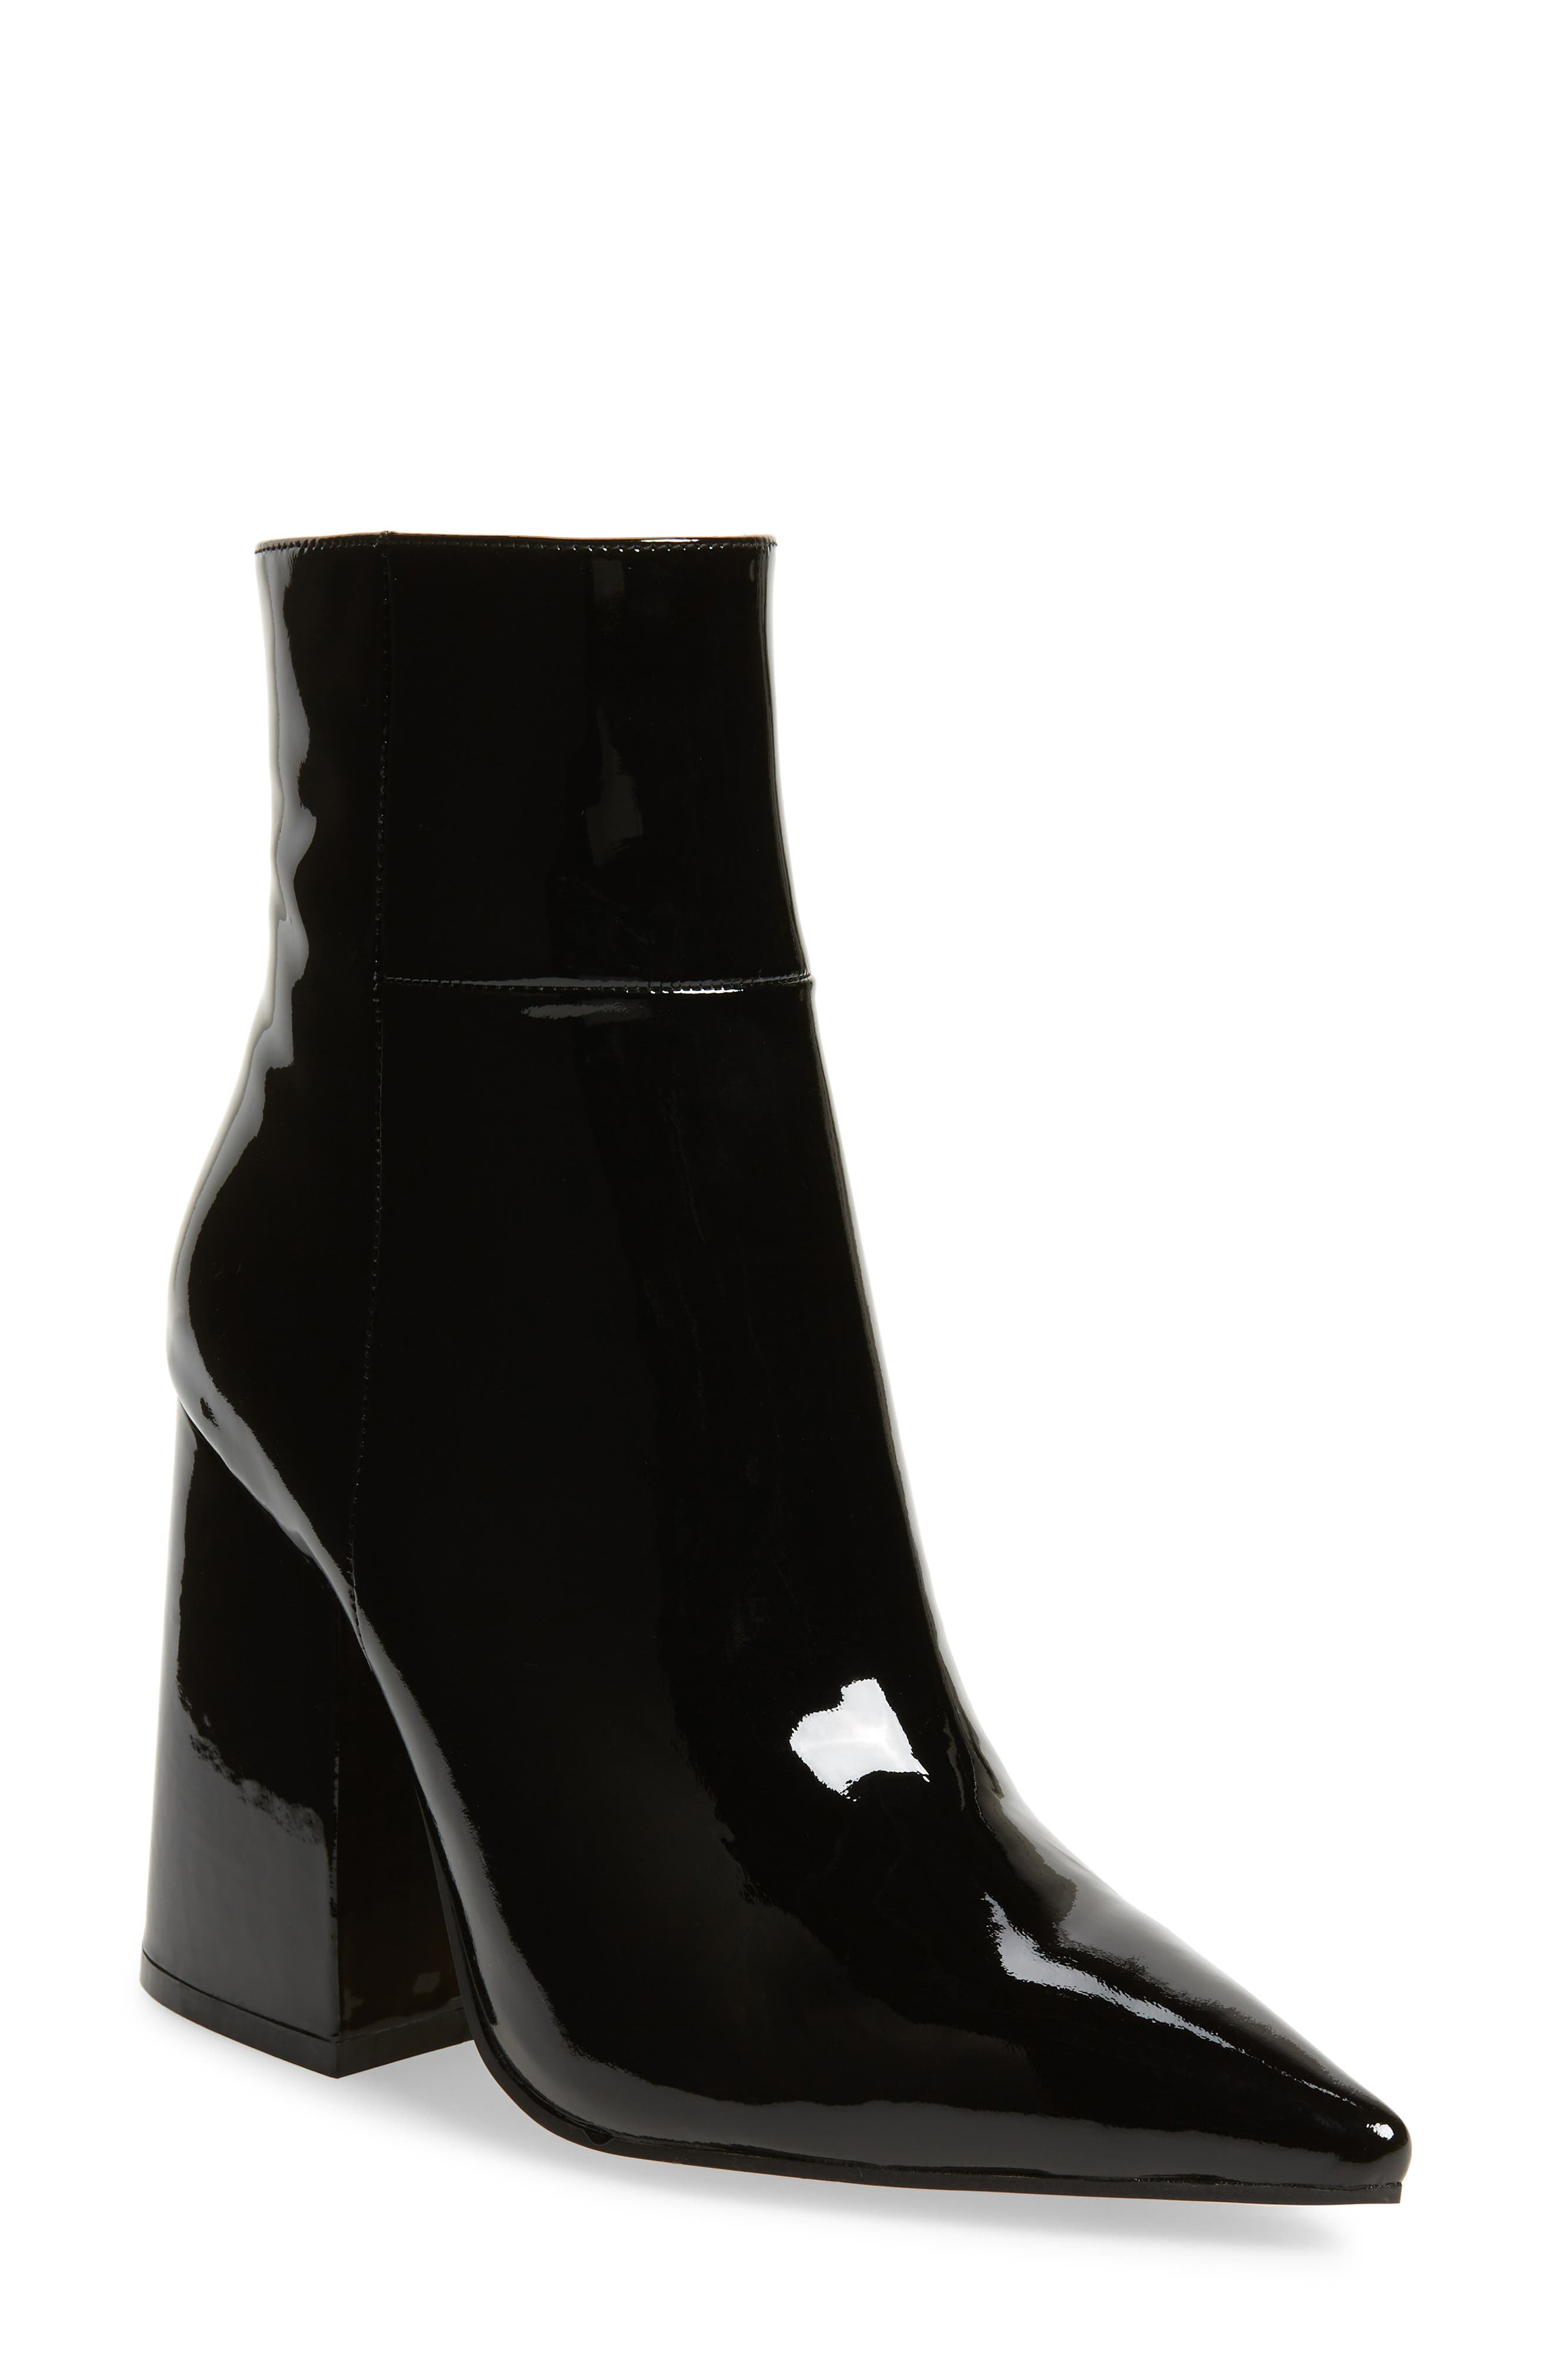 Ahara Bootie,                             Main thumbnail 1, color,                             BLACK PATENT LEATHER